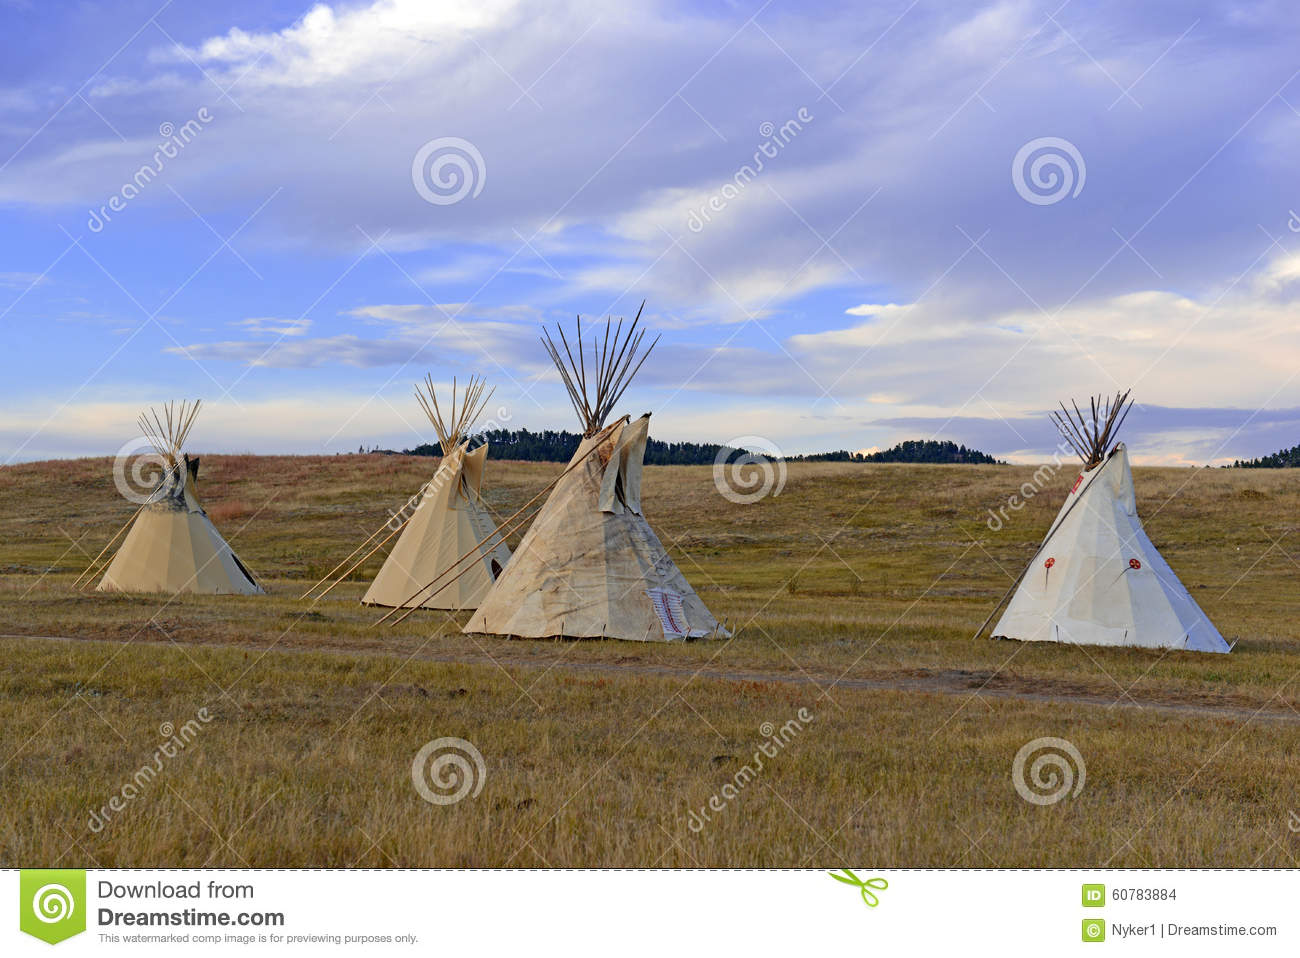 Great Plains clipart #18, Download drawings